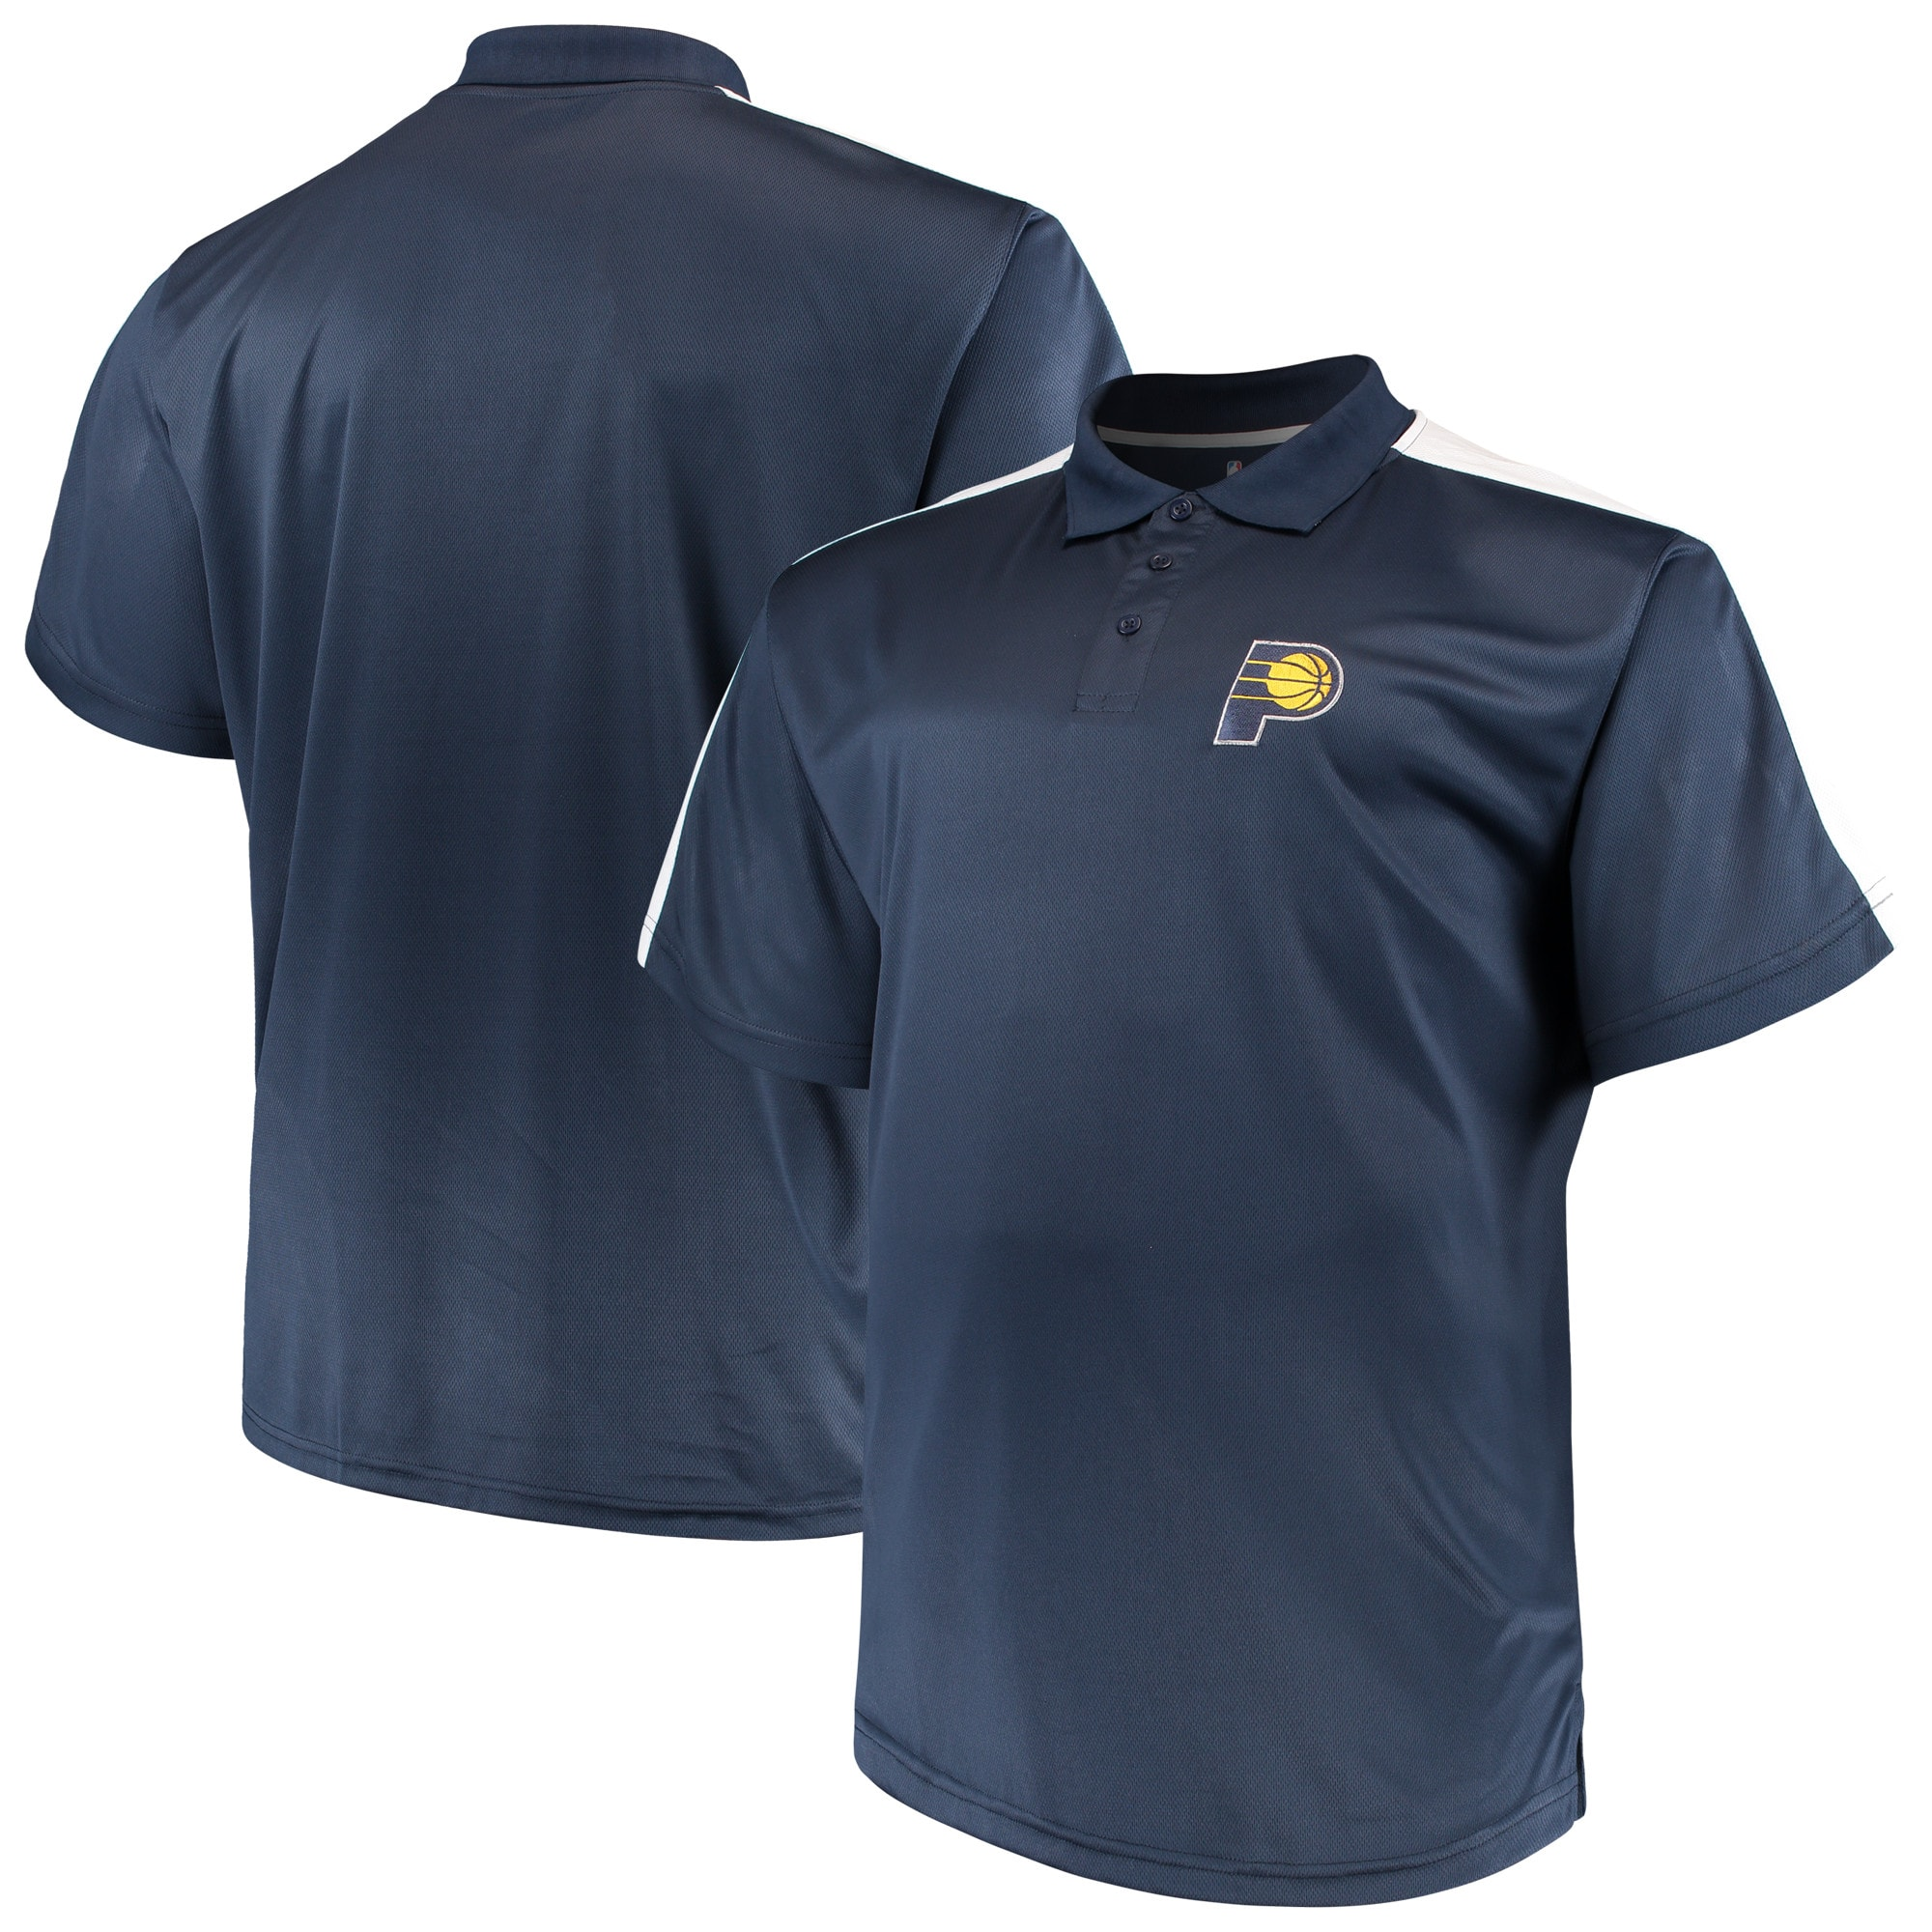 Indiana Pacers Majestic Big & Tall Birdseye Polo - Navy/White